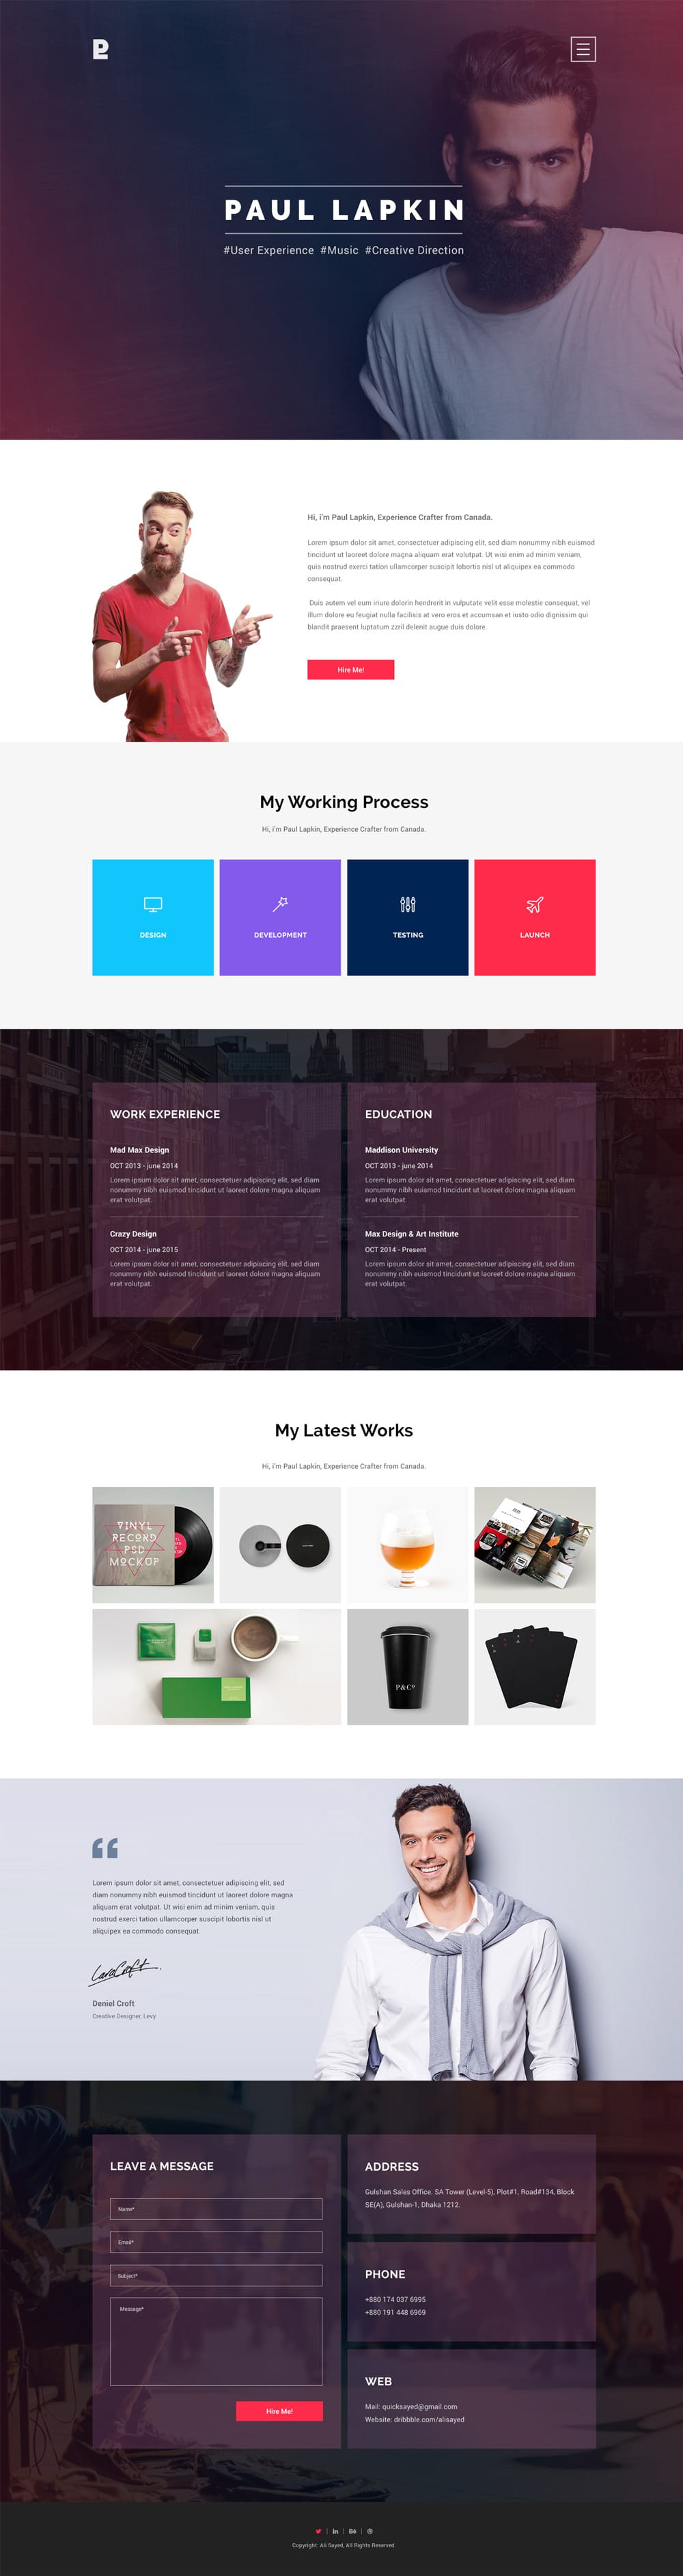 Personal Site Free PSD